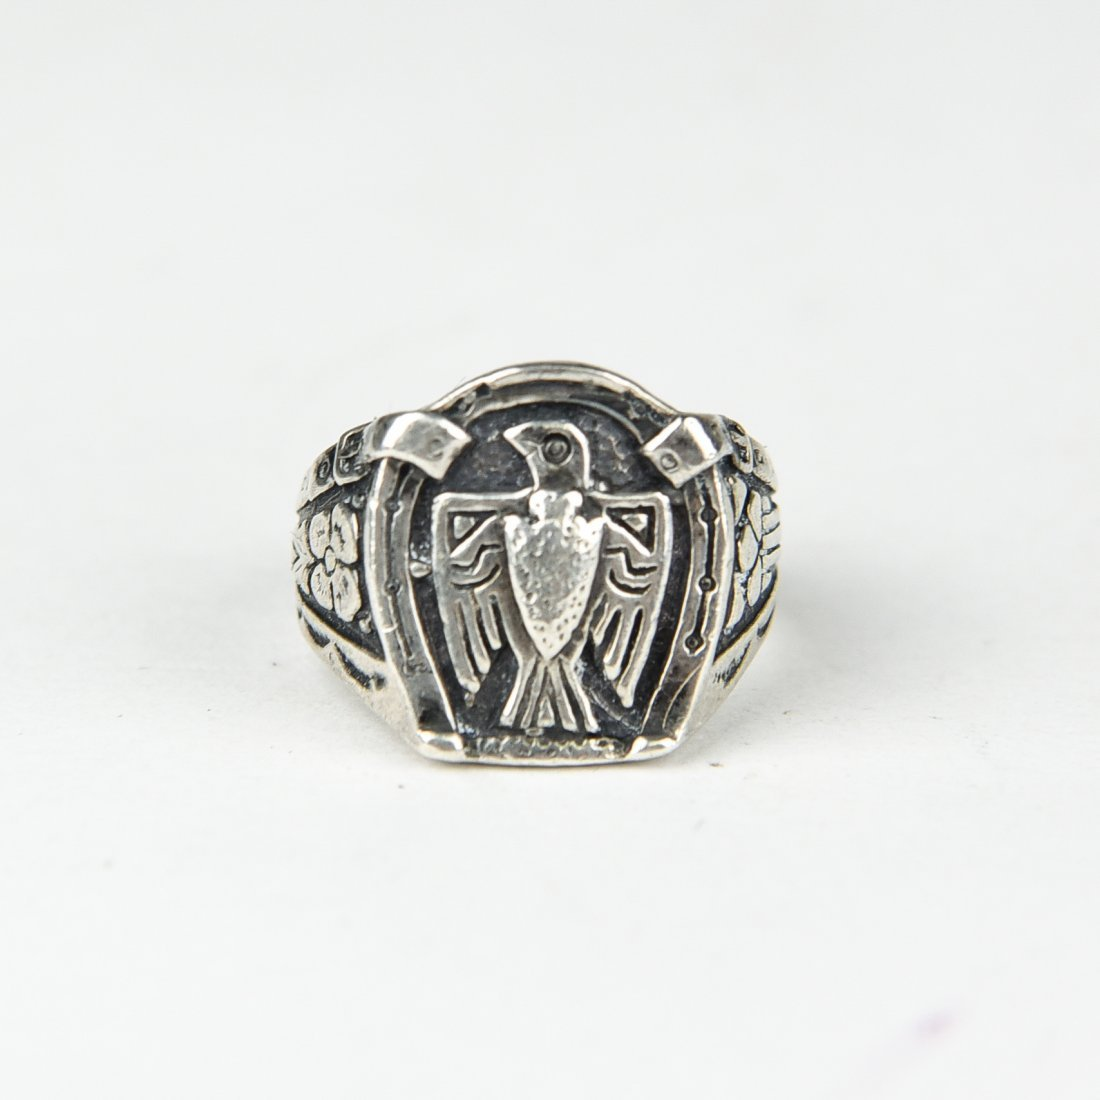 NAVAJO SILVER EAGLE RING